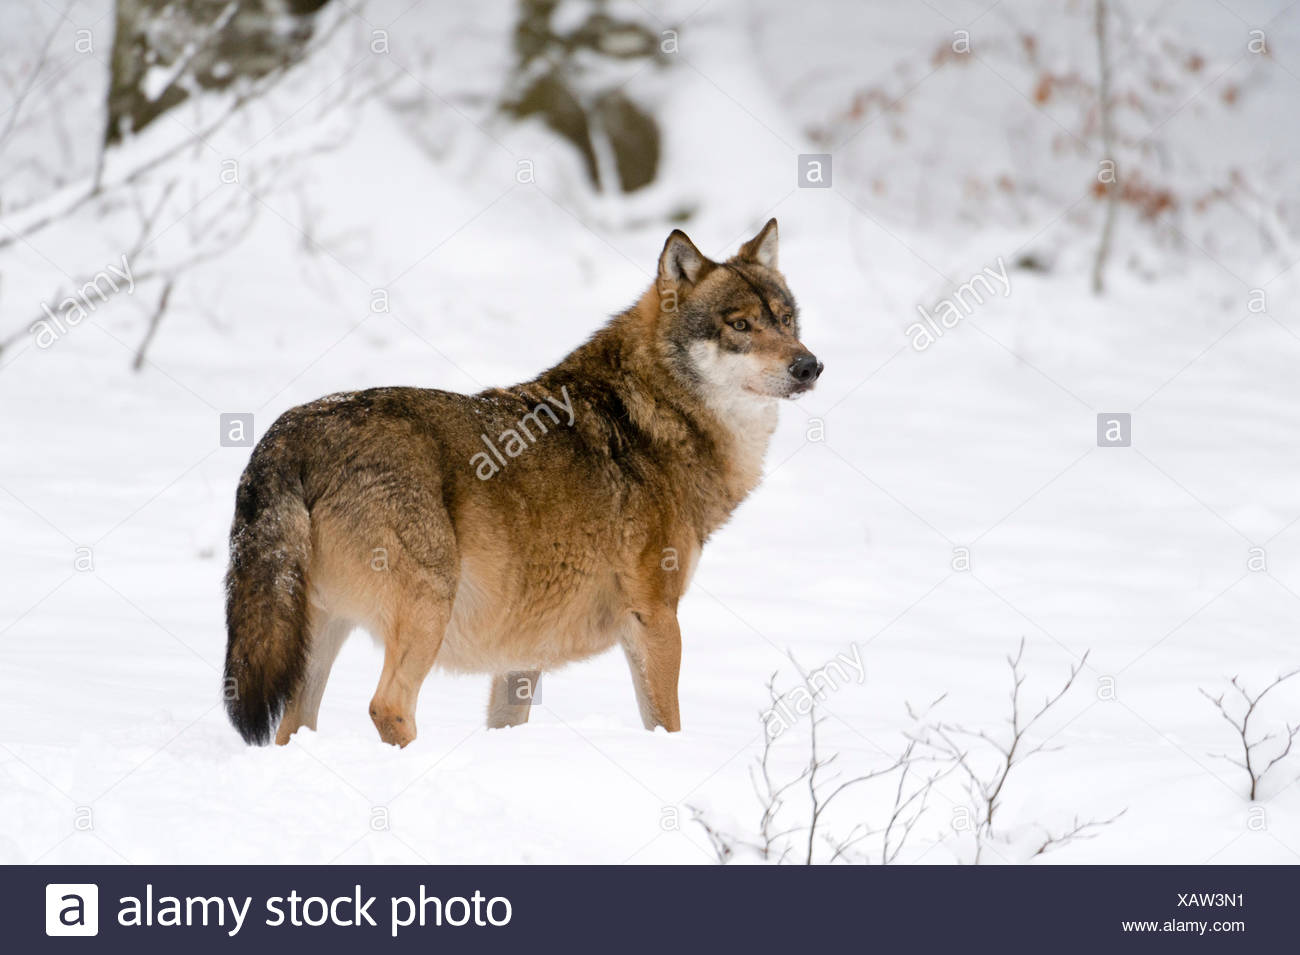 Gray wolf (Canis lupus), Bavarian Forest National Park, Bavaria, Germany - Stock Image